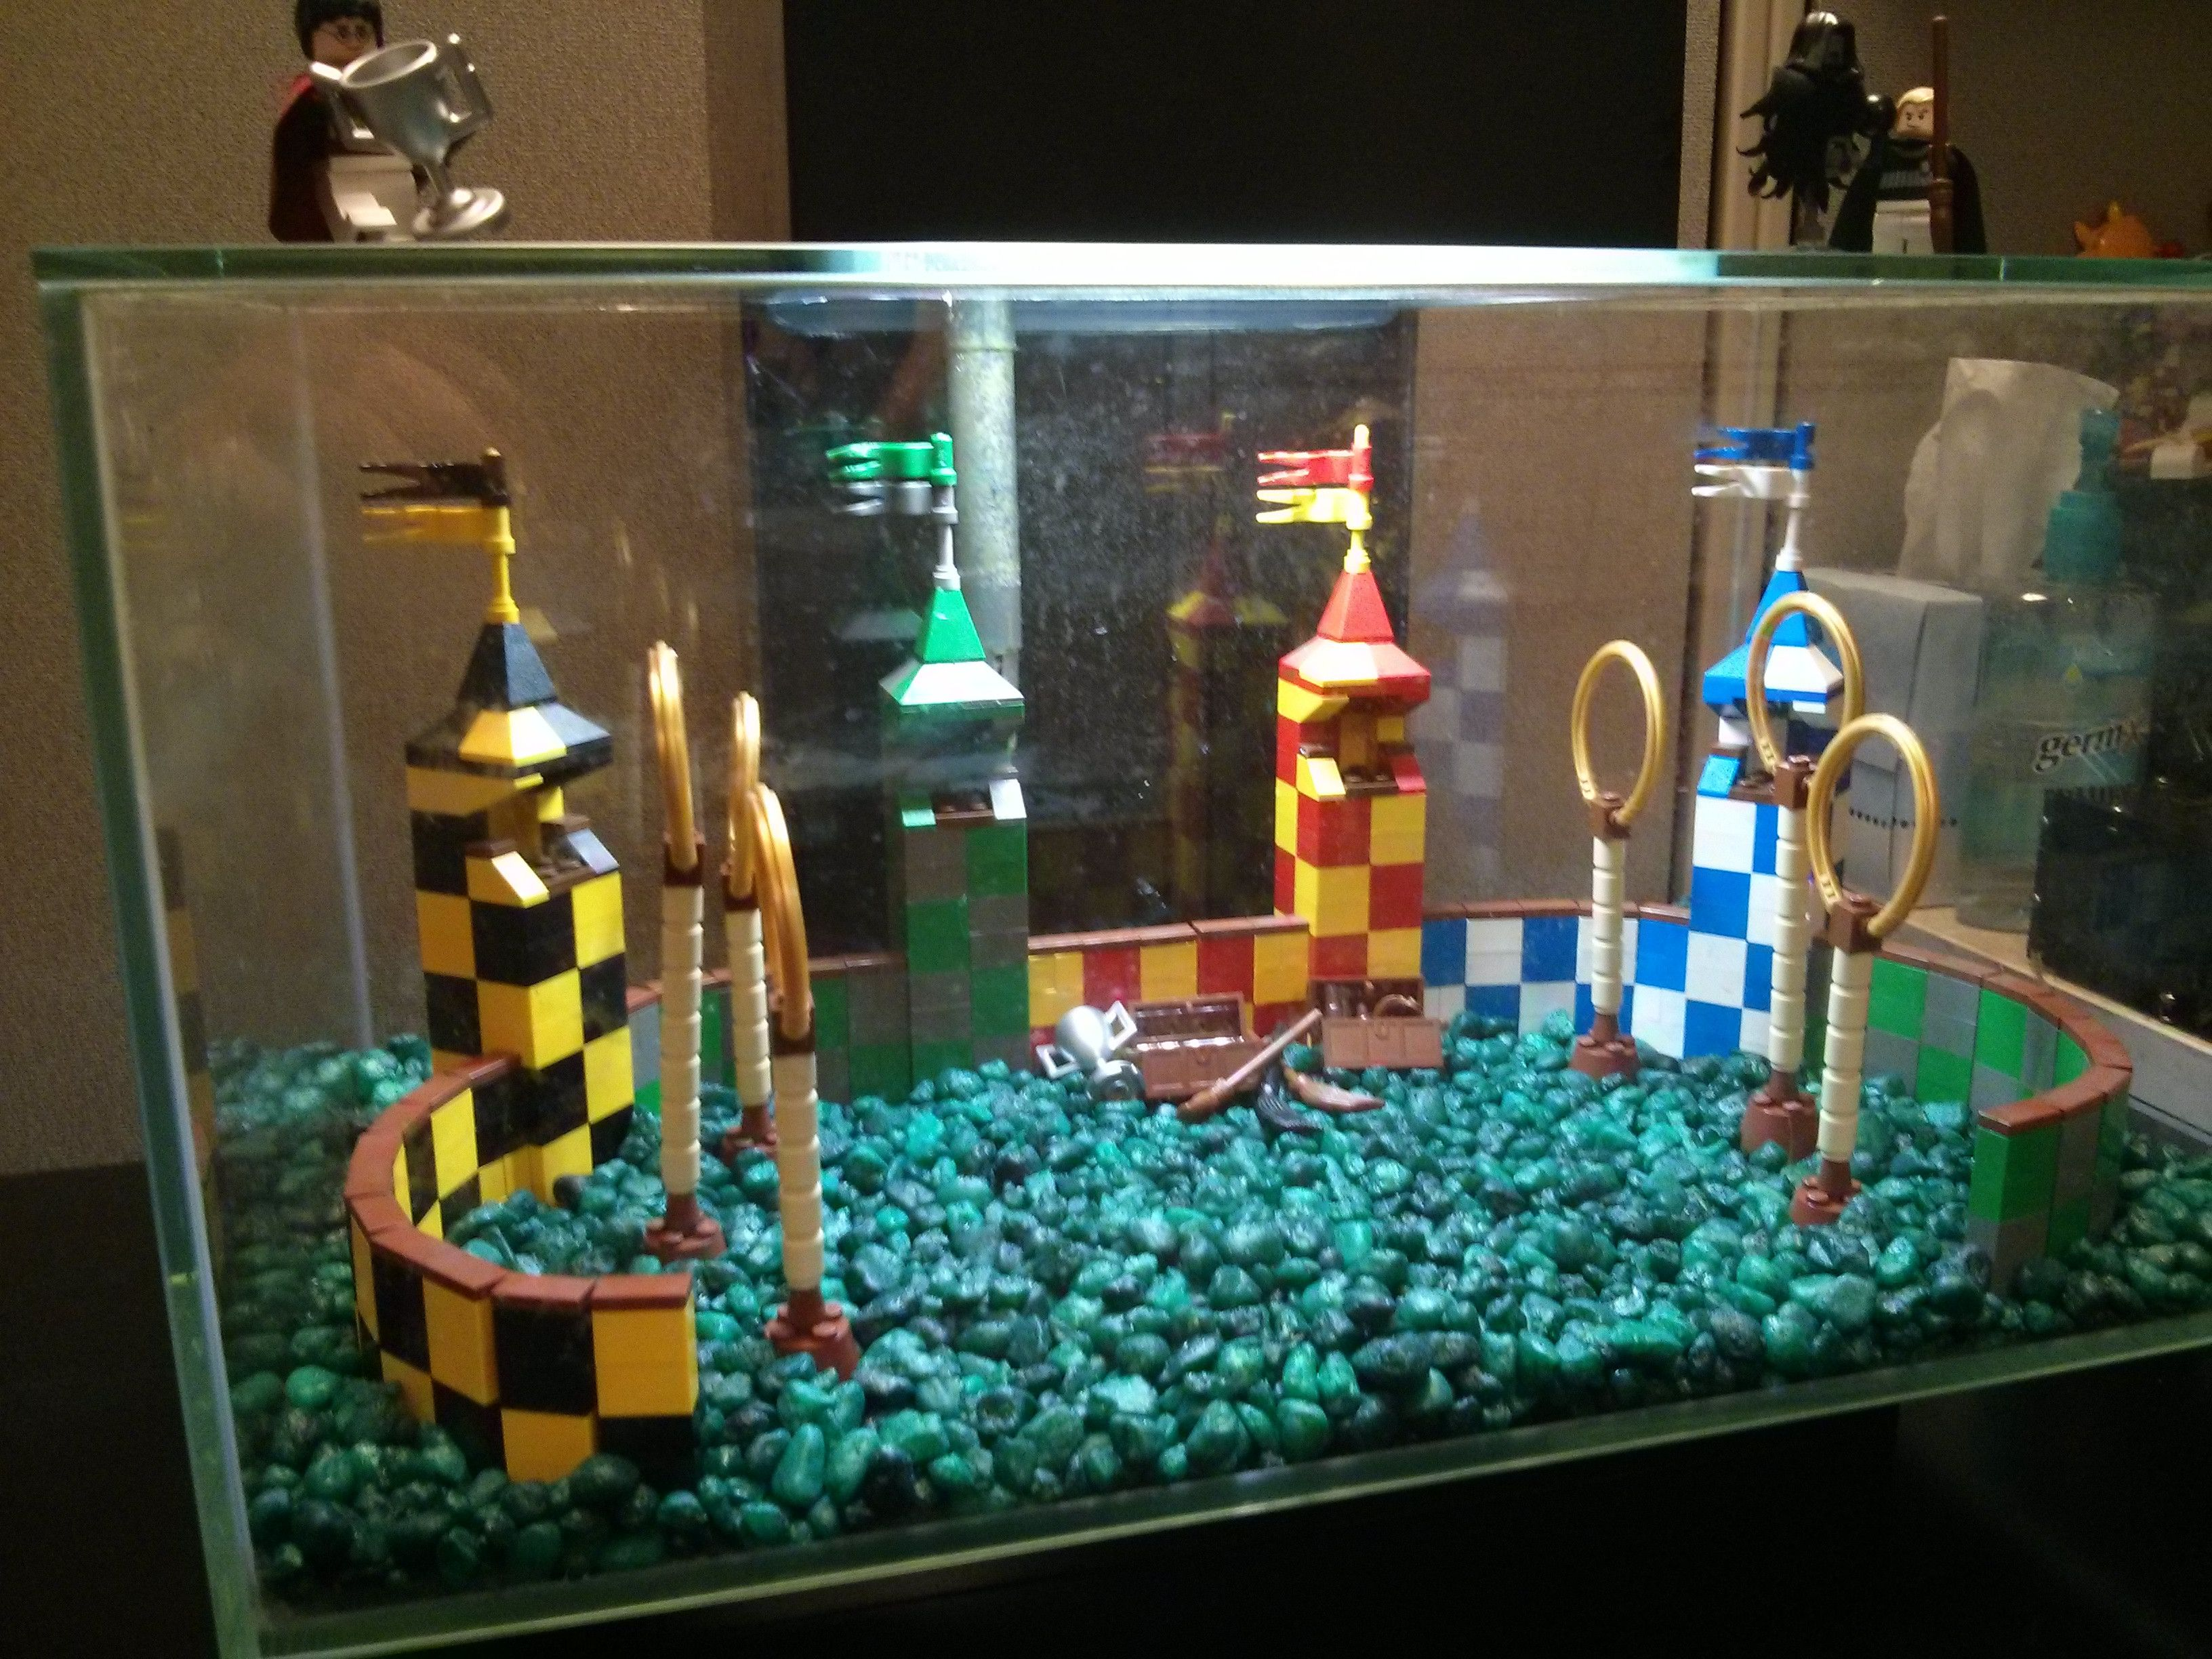 Aquarium Schlafzimmer ~ Quidditch aquarium decoration build aquarium decorations